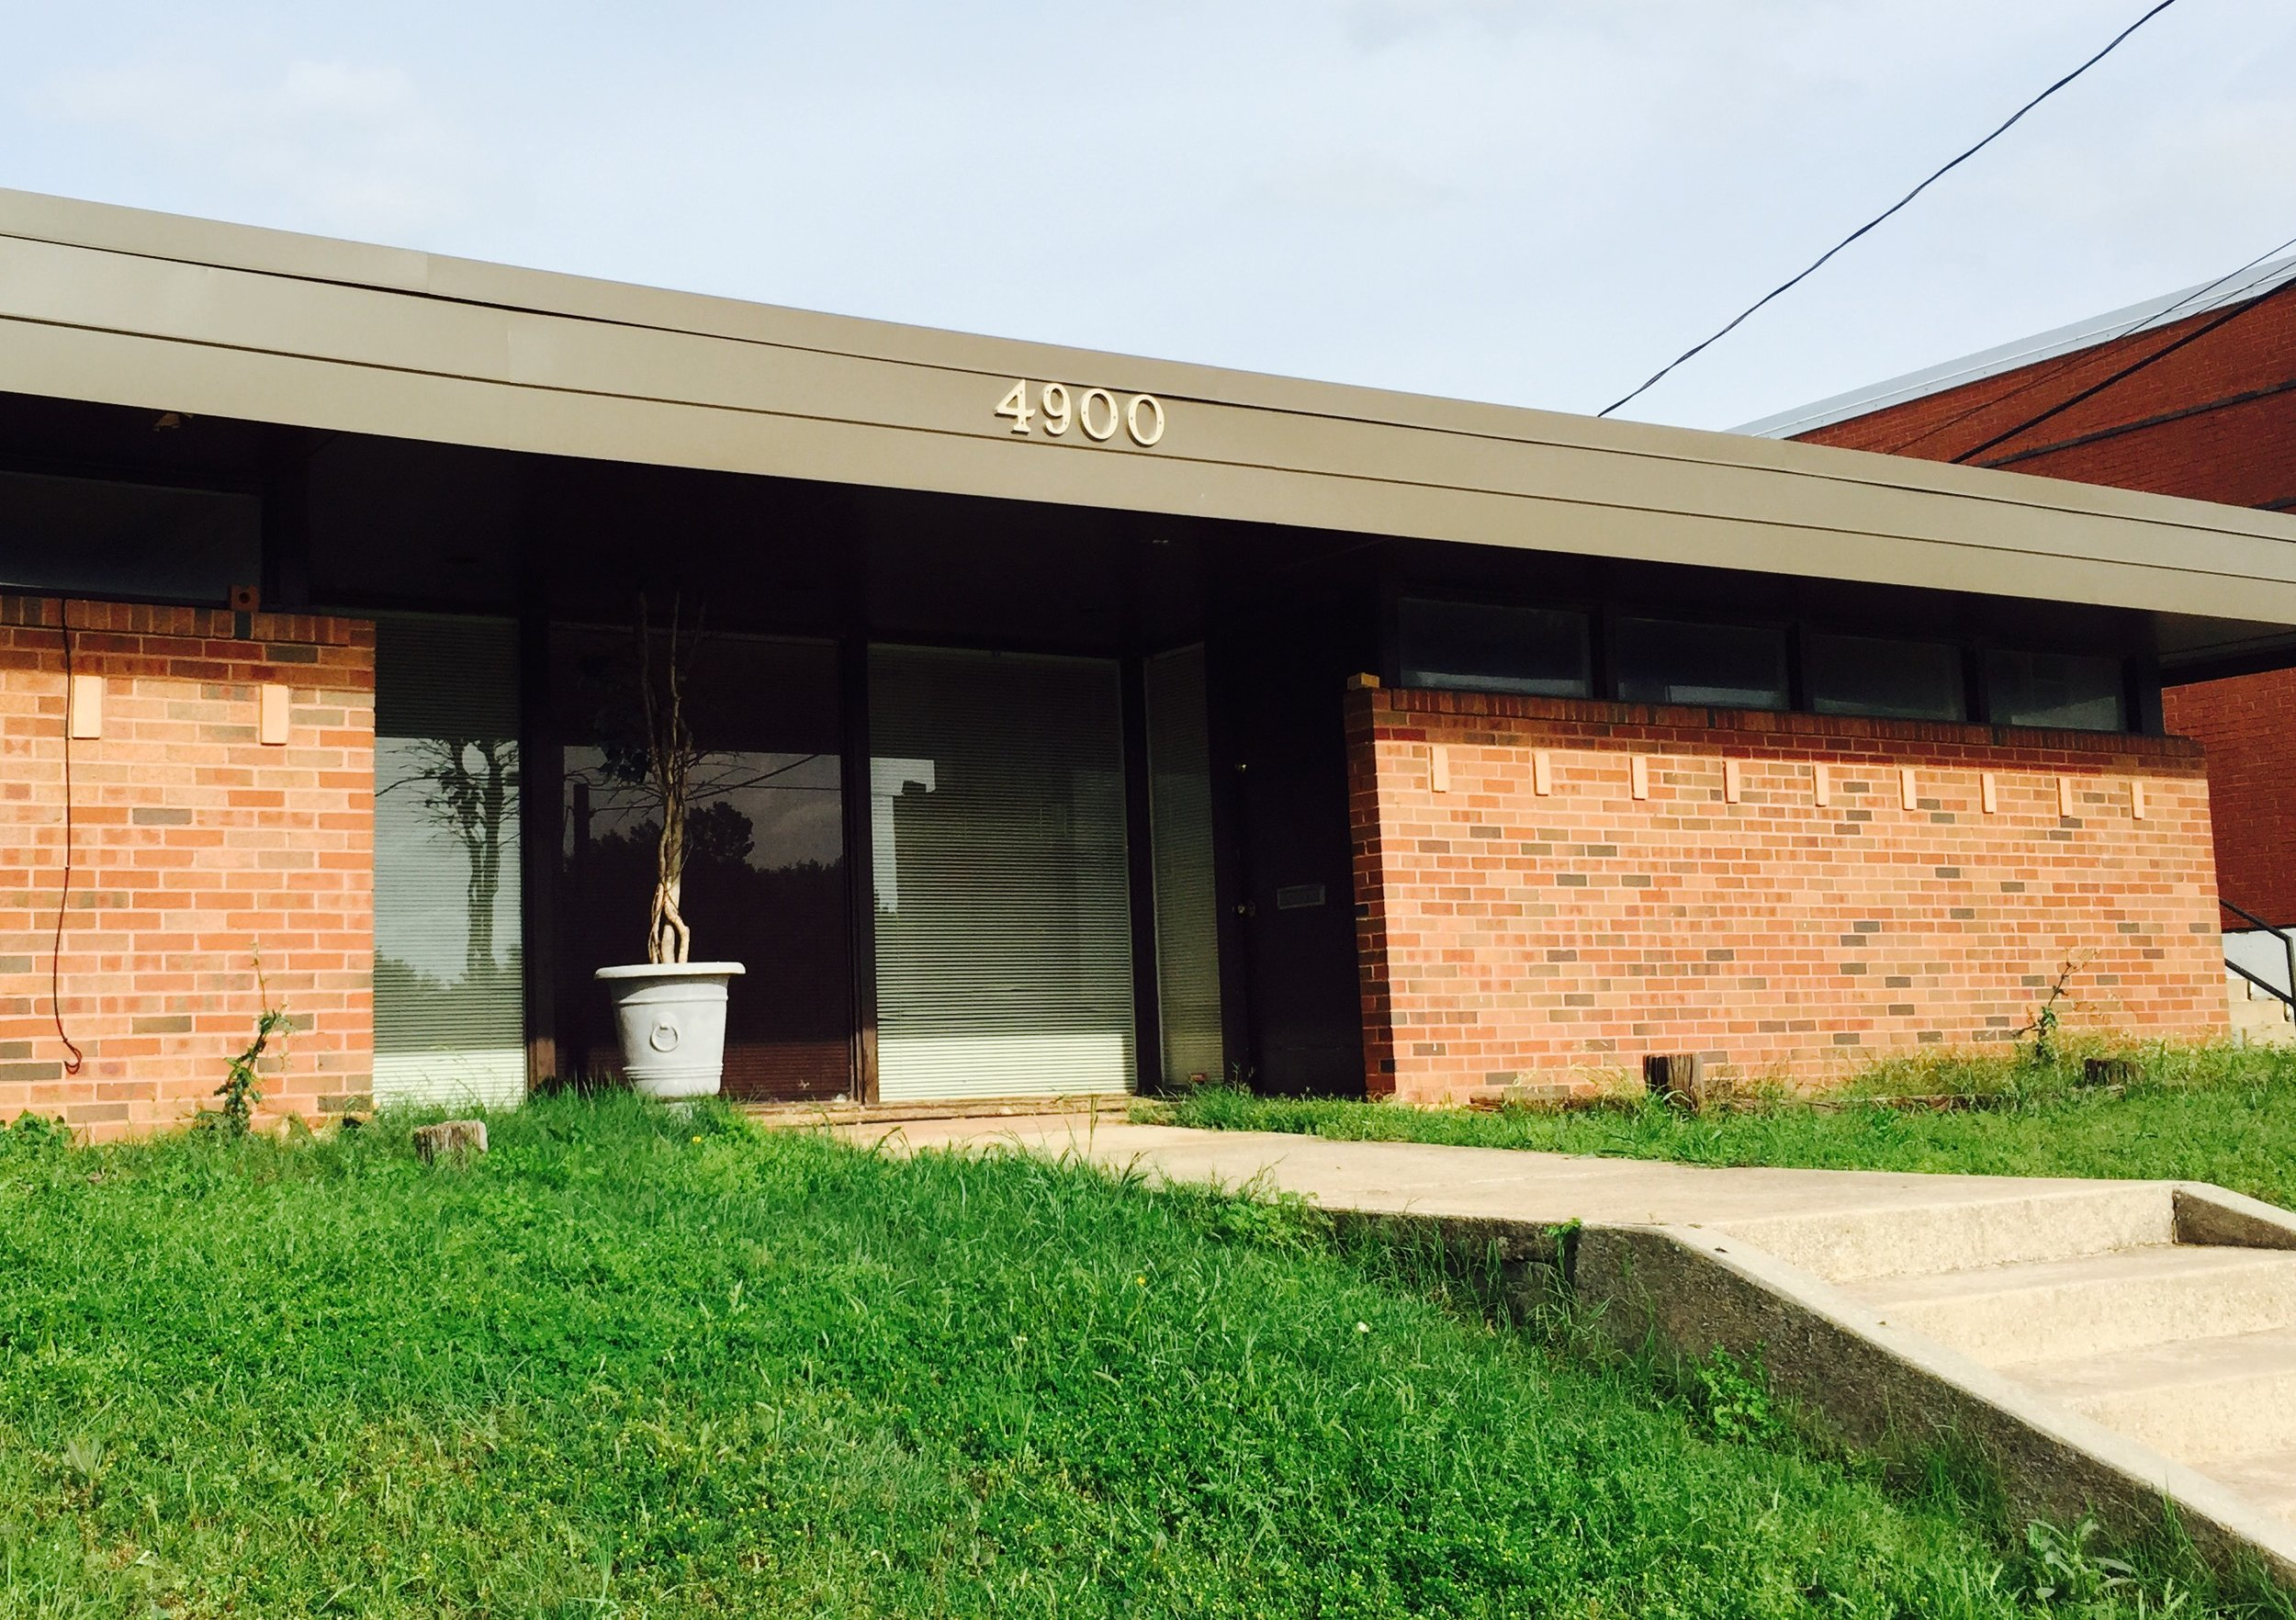 Alleged former brothel location at 4900 N. Sewell Ave.